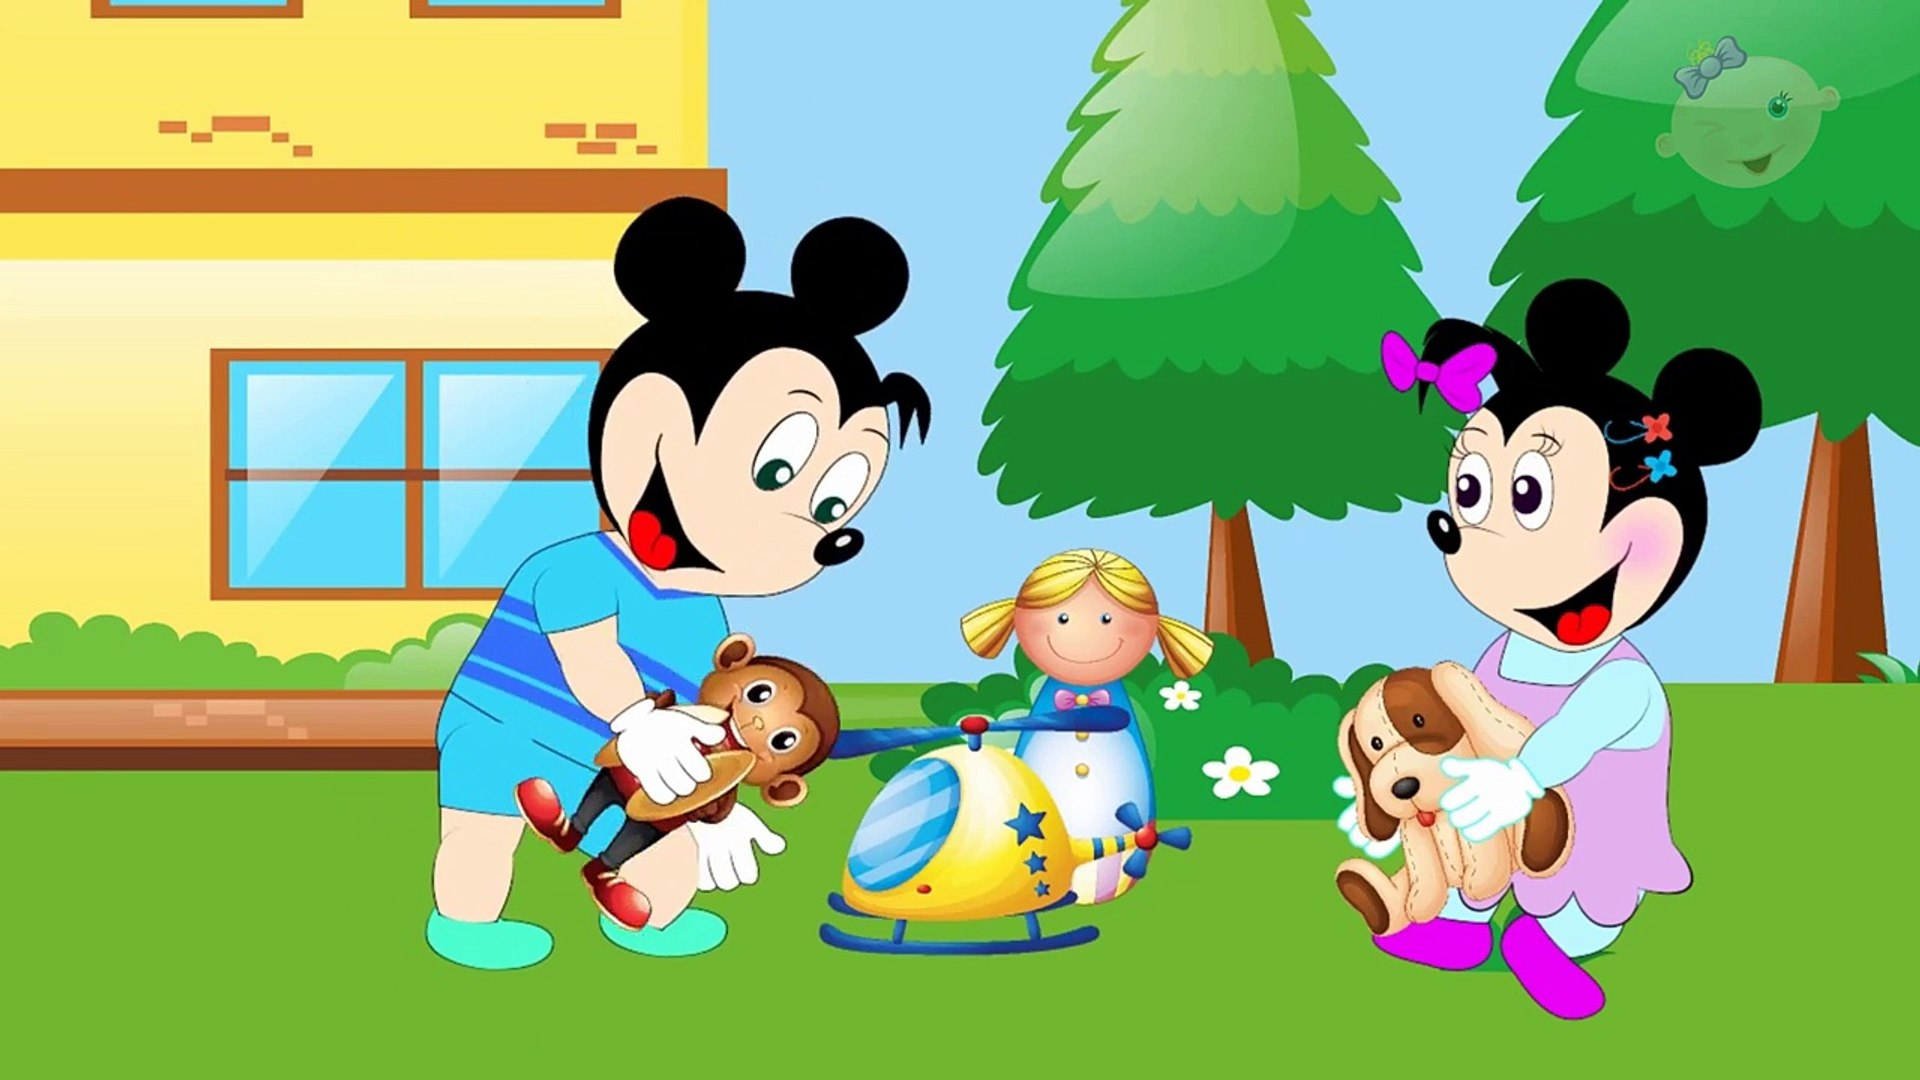 Mickey Mouse Babie Chase Robbers Goofy Babie Police In Prison Minnie Mouse Donald Duck N Video Dailymotion